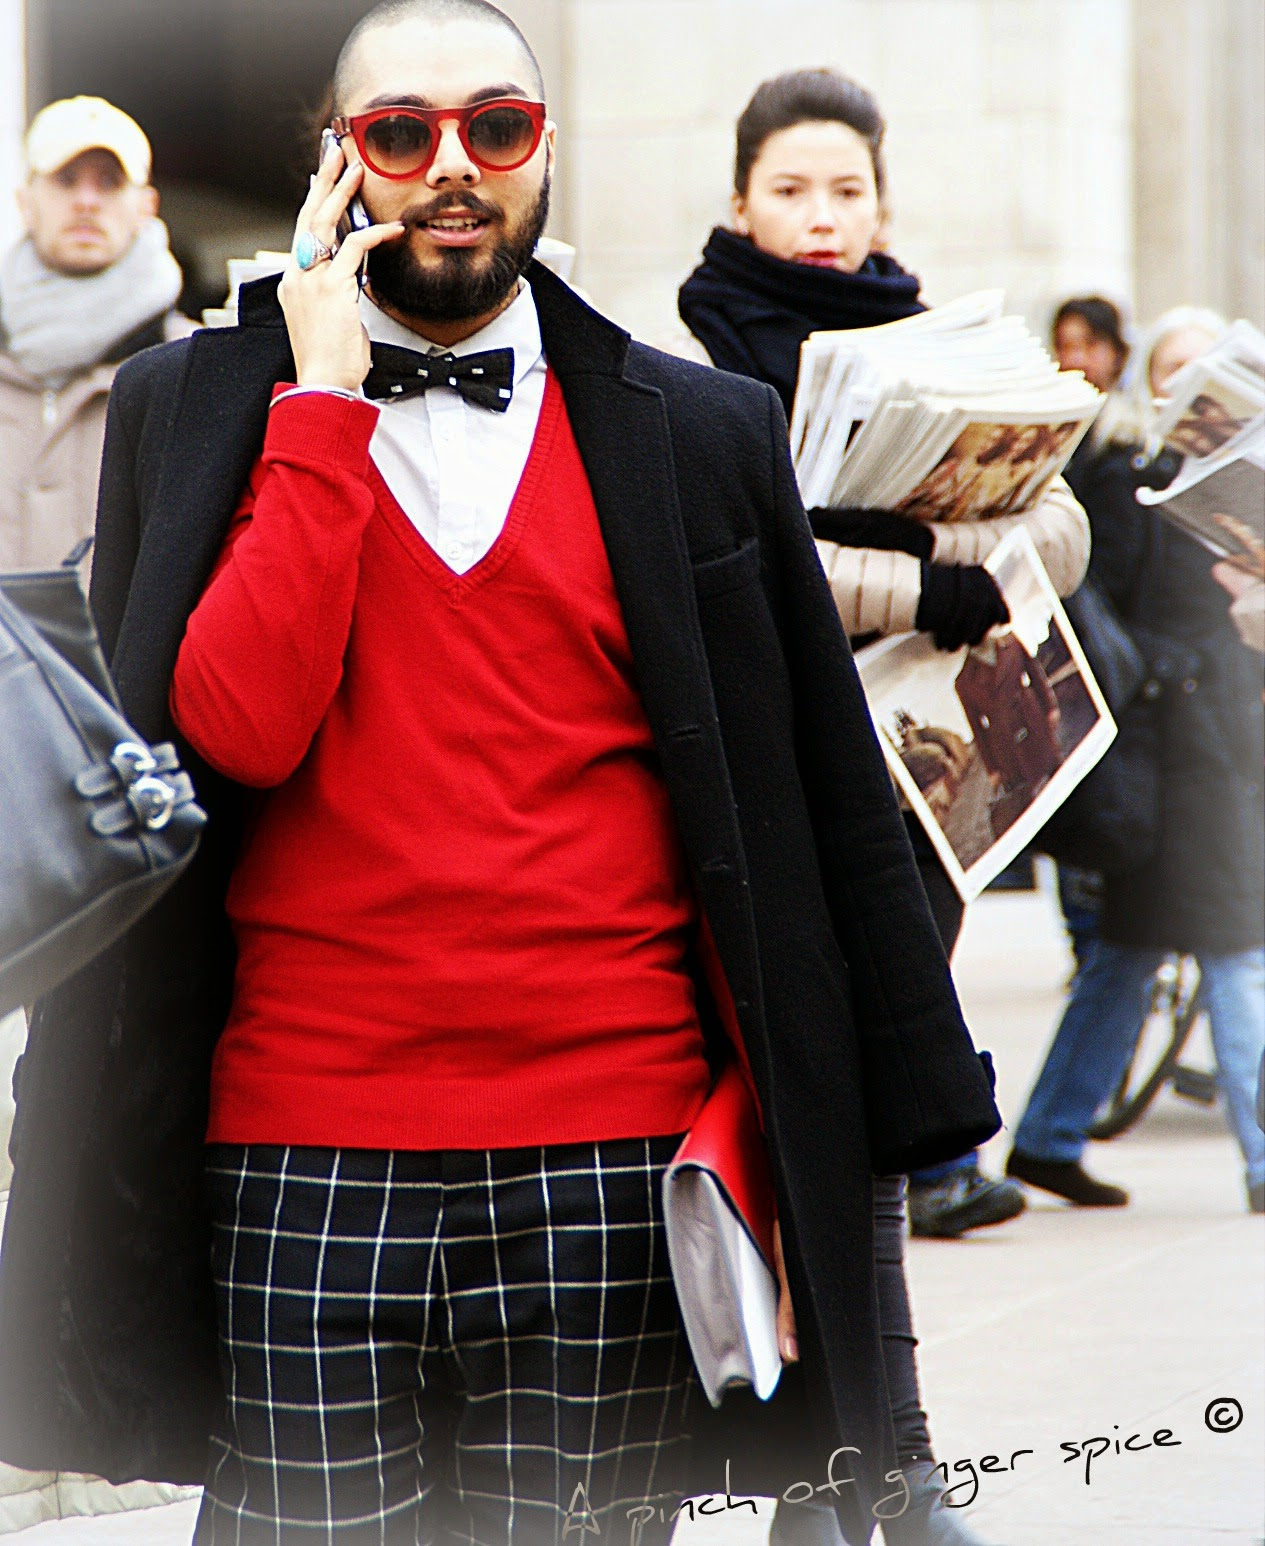 Man style Milano Fashion Week 2015